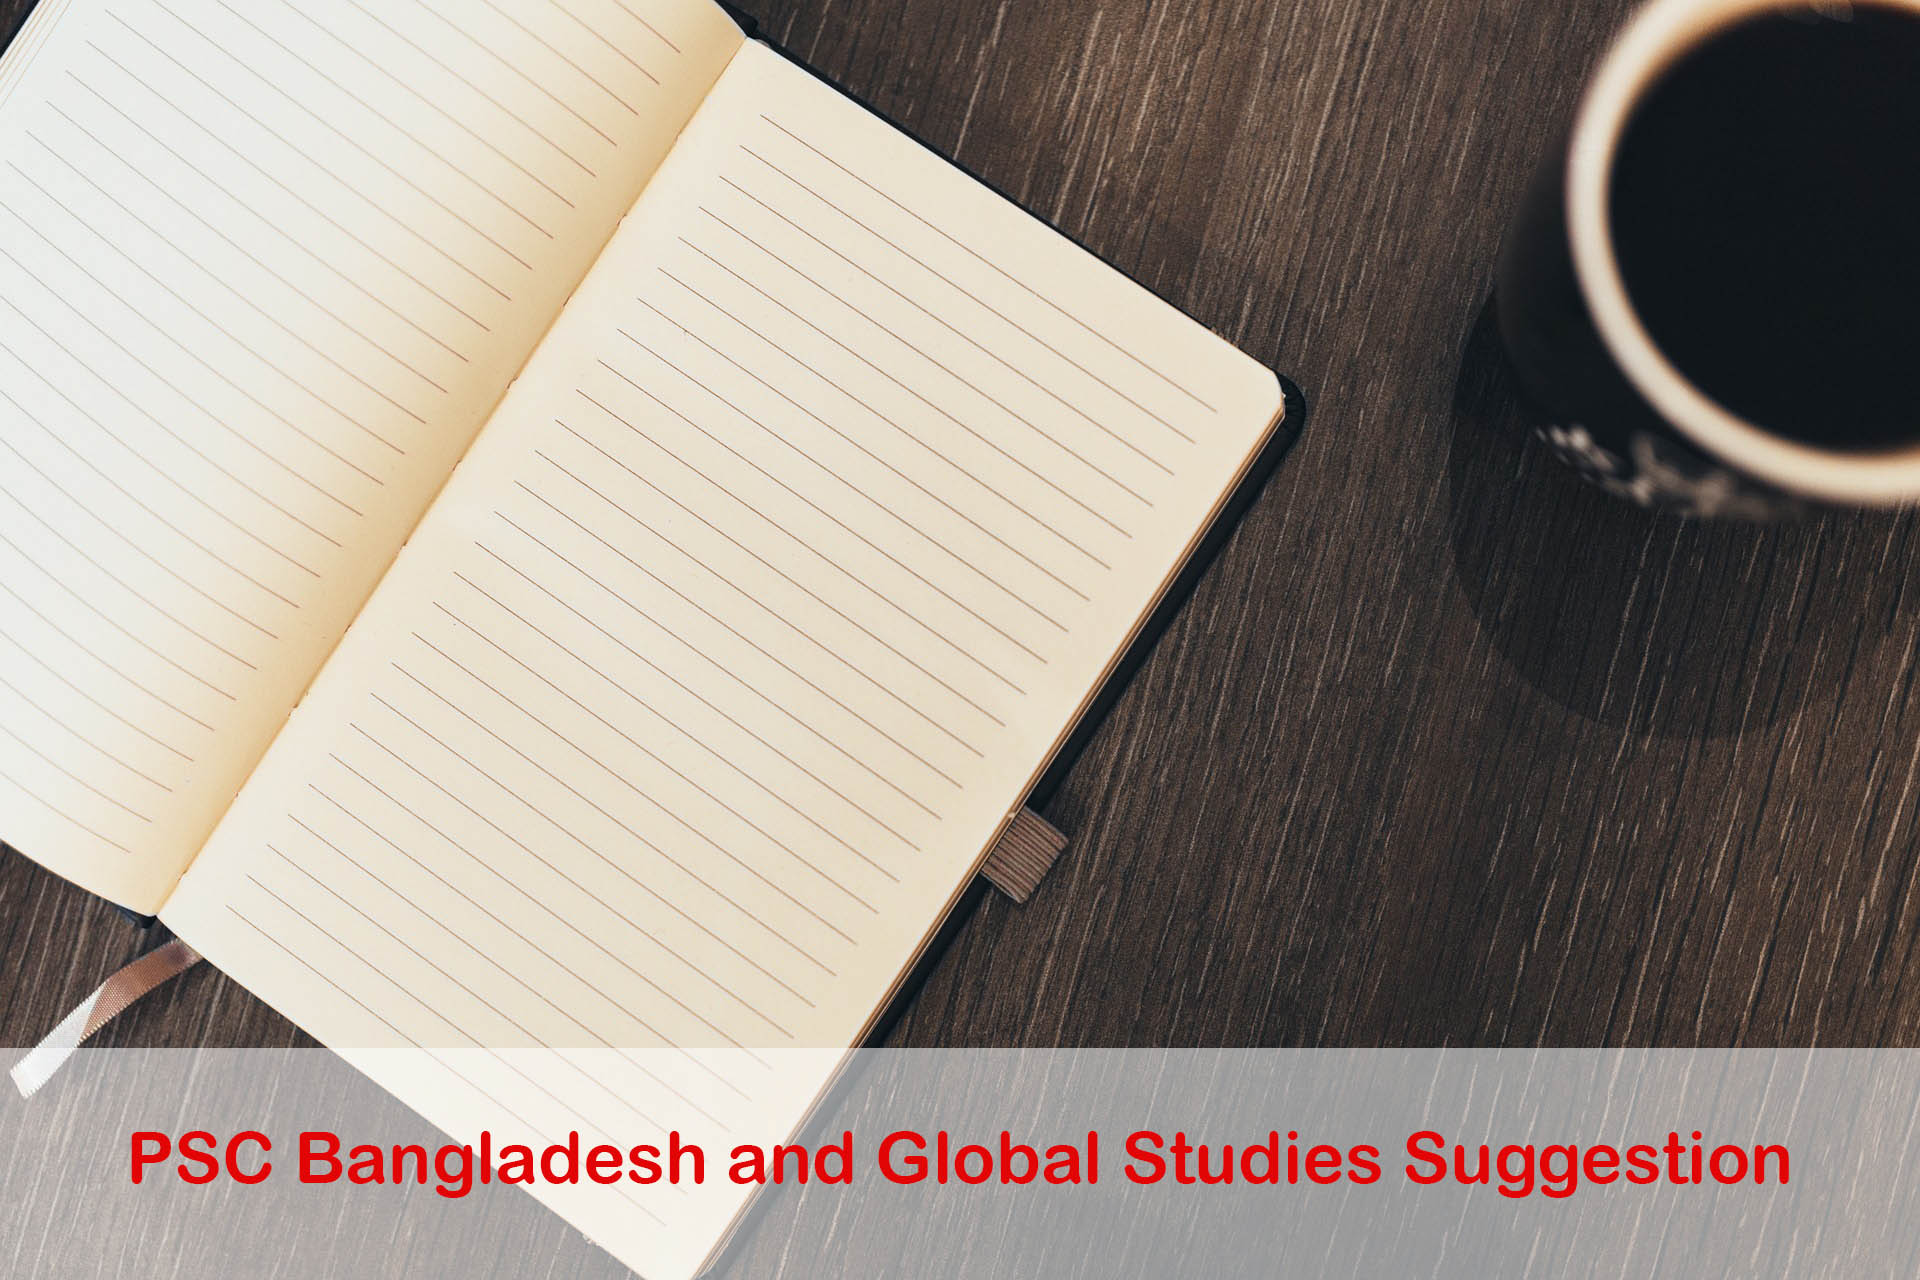 PSC Bangladesh and Global Studies Suggestion